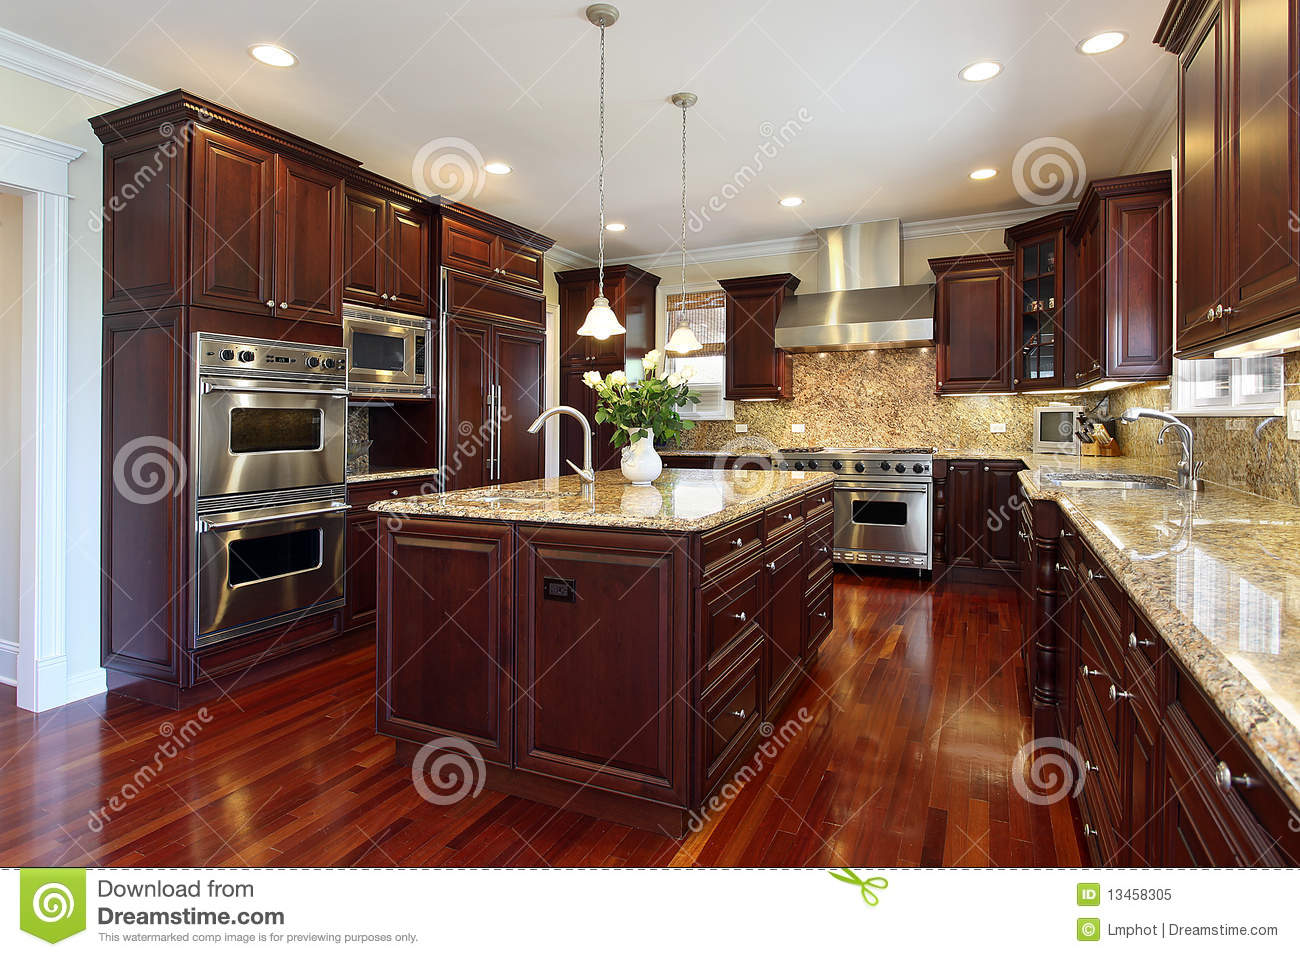 kitchen with cherry wood cabinetry royalty free stock photo image 13458305. Black Bedroom Furniture Sets. Home Design Ideas